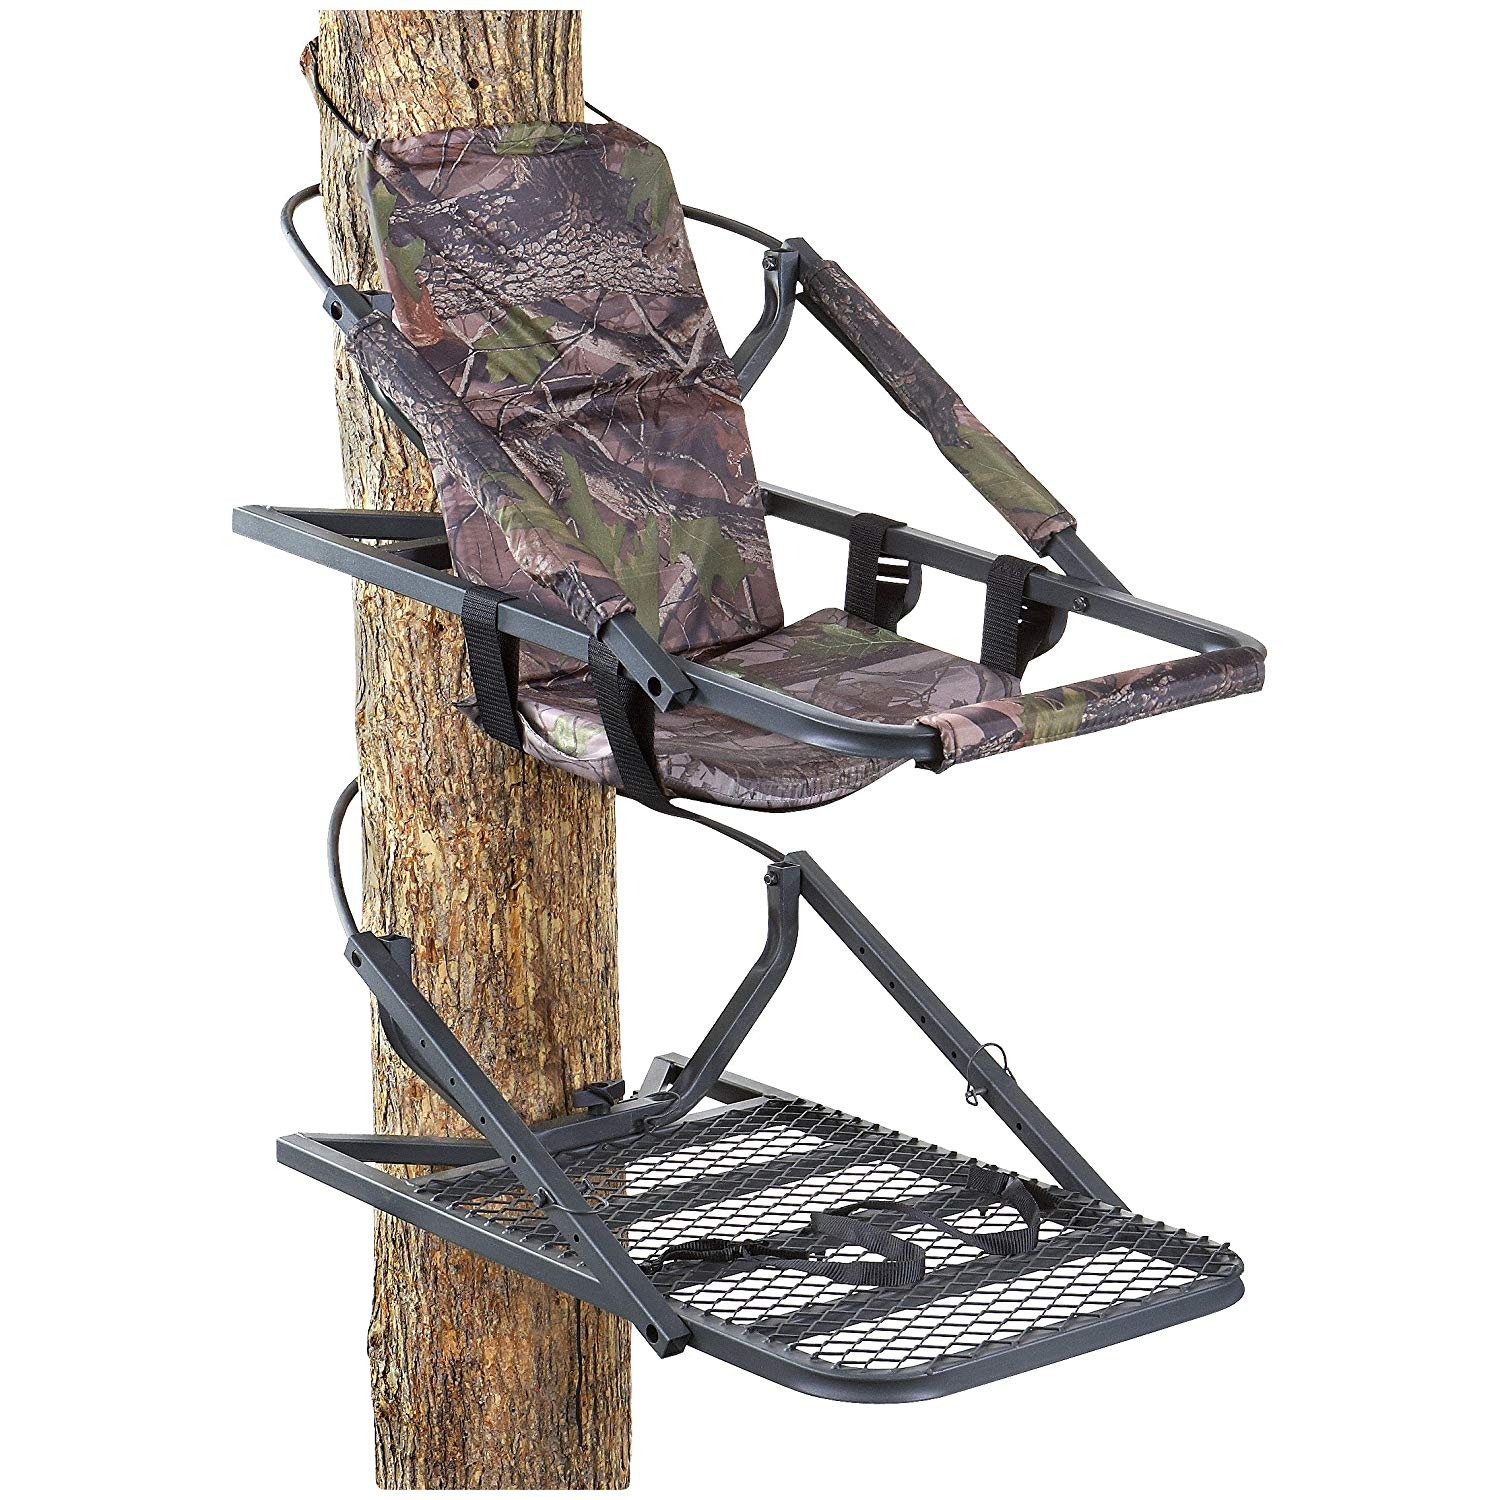 Guide Gear Extreme Deluxe Climber Tree Stand